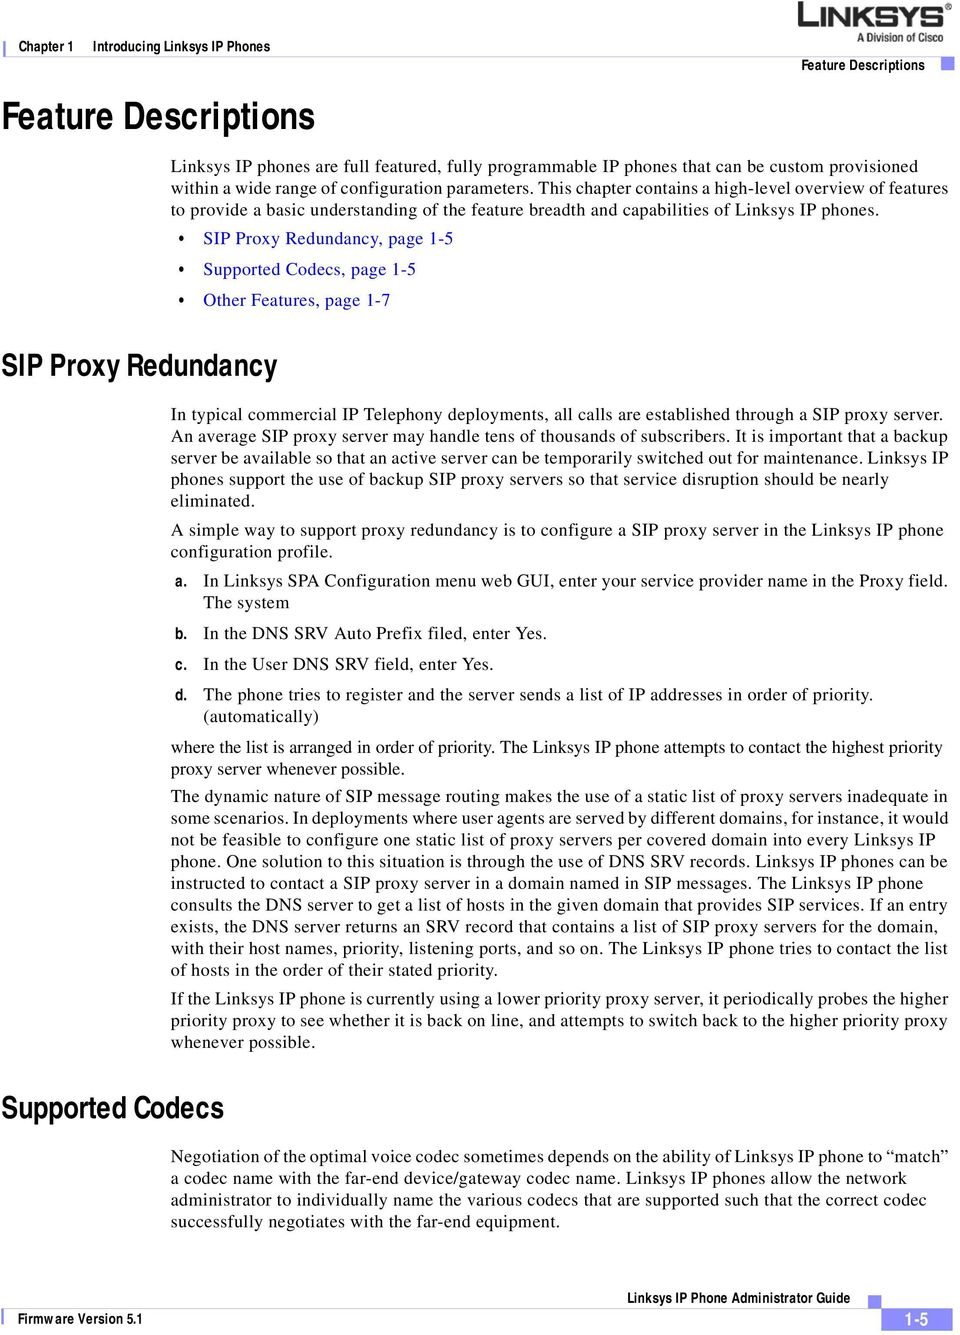 SIP Proxy Redundancy, page 1-5 Supported Codecs, page 1-5 Other Features, page 1-7 SIP Proxy Redundancy In typical commercial IP Telephony deployments, all calls are established through a SIP proxy